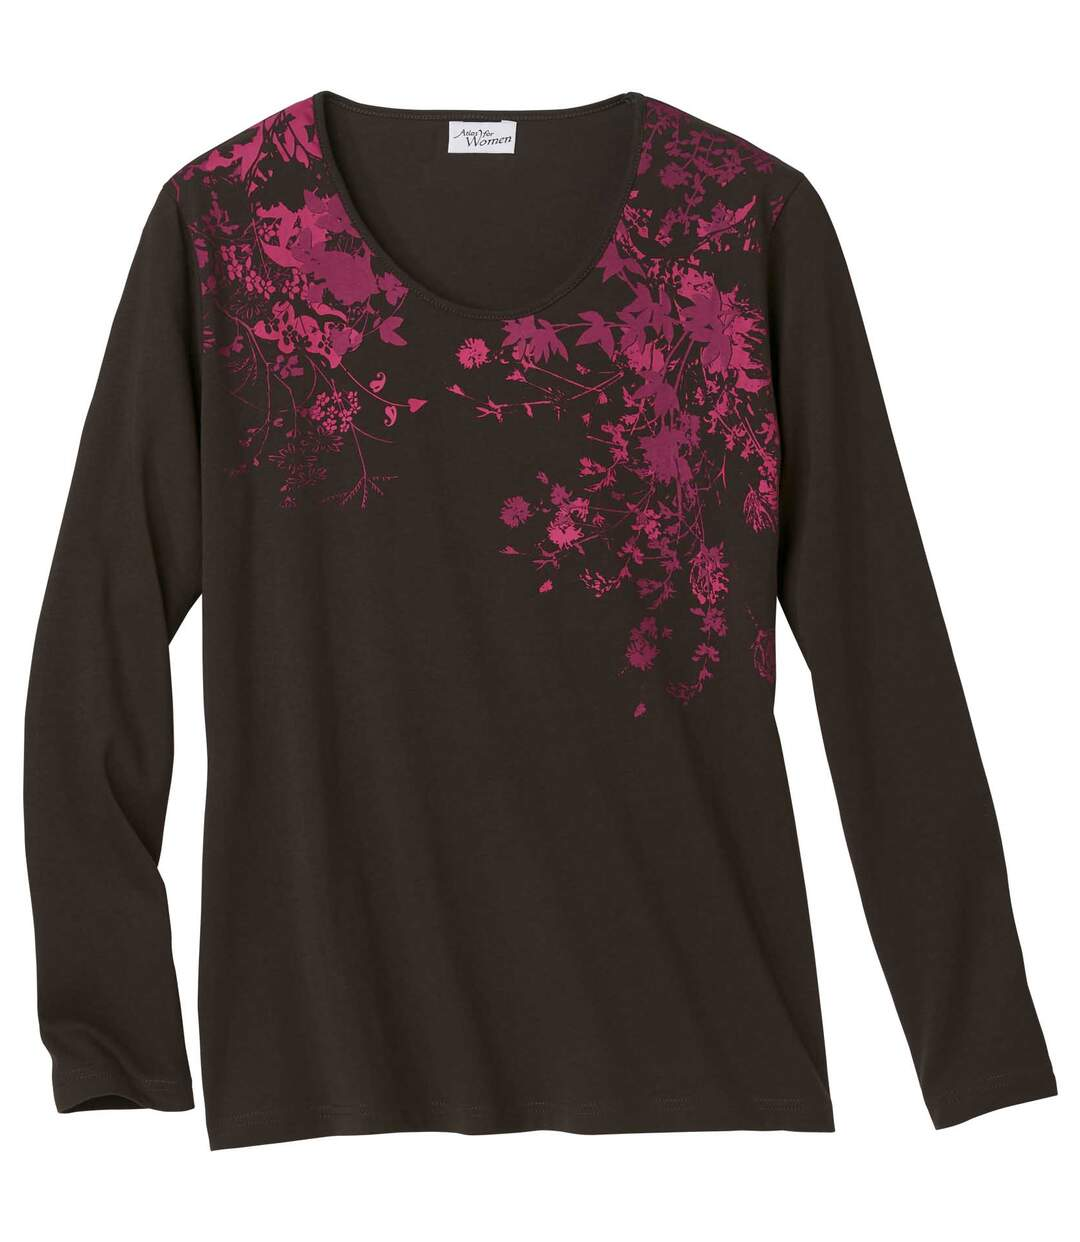 Women's Brown Long Sleeve Top with Cherry Blossom Pattern